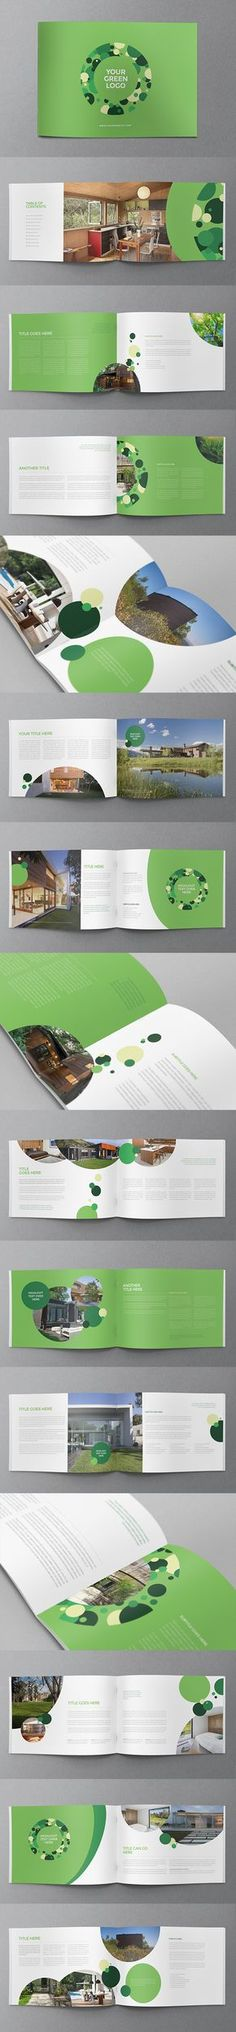 Green Modern Ecologic Brochure